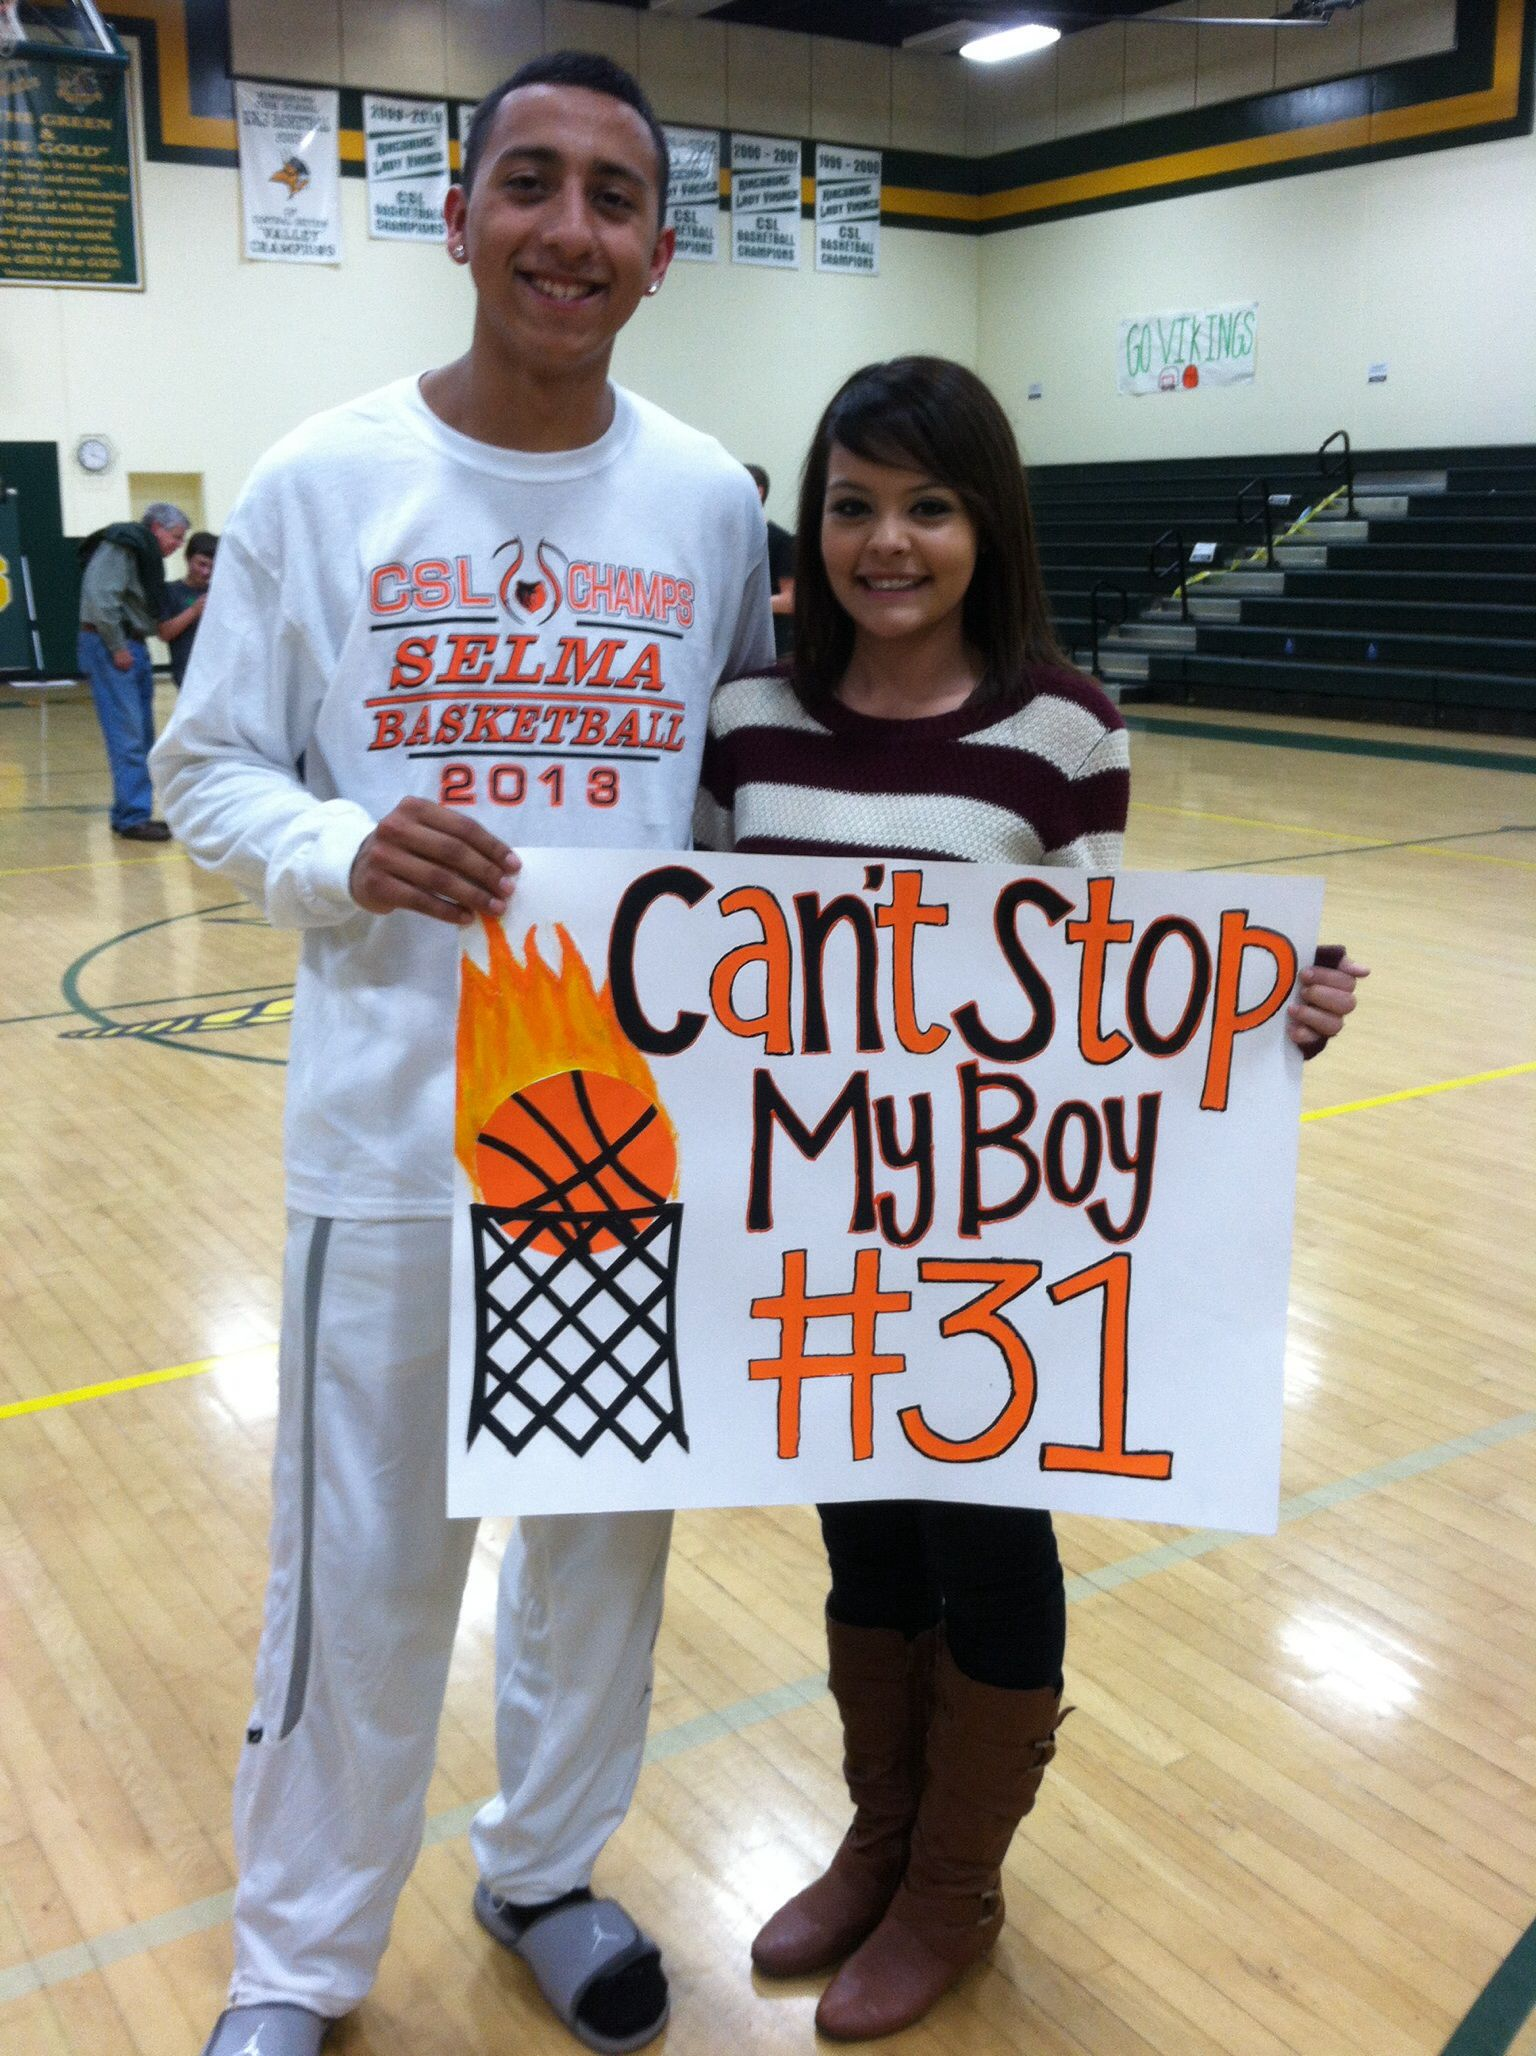 Cute basketball signs for your boyfriend